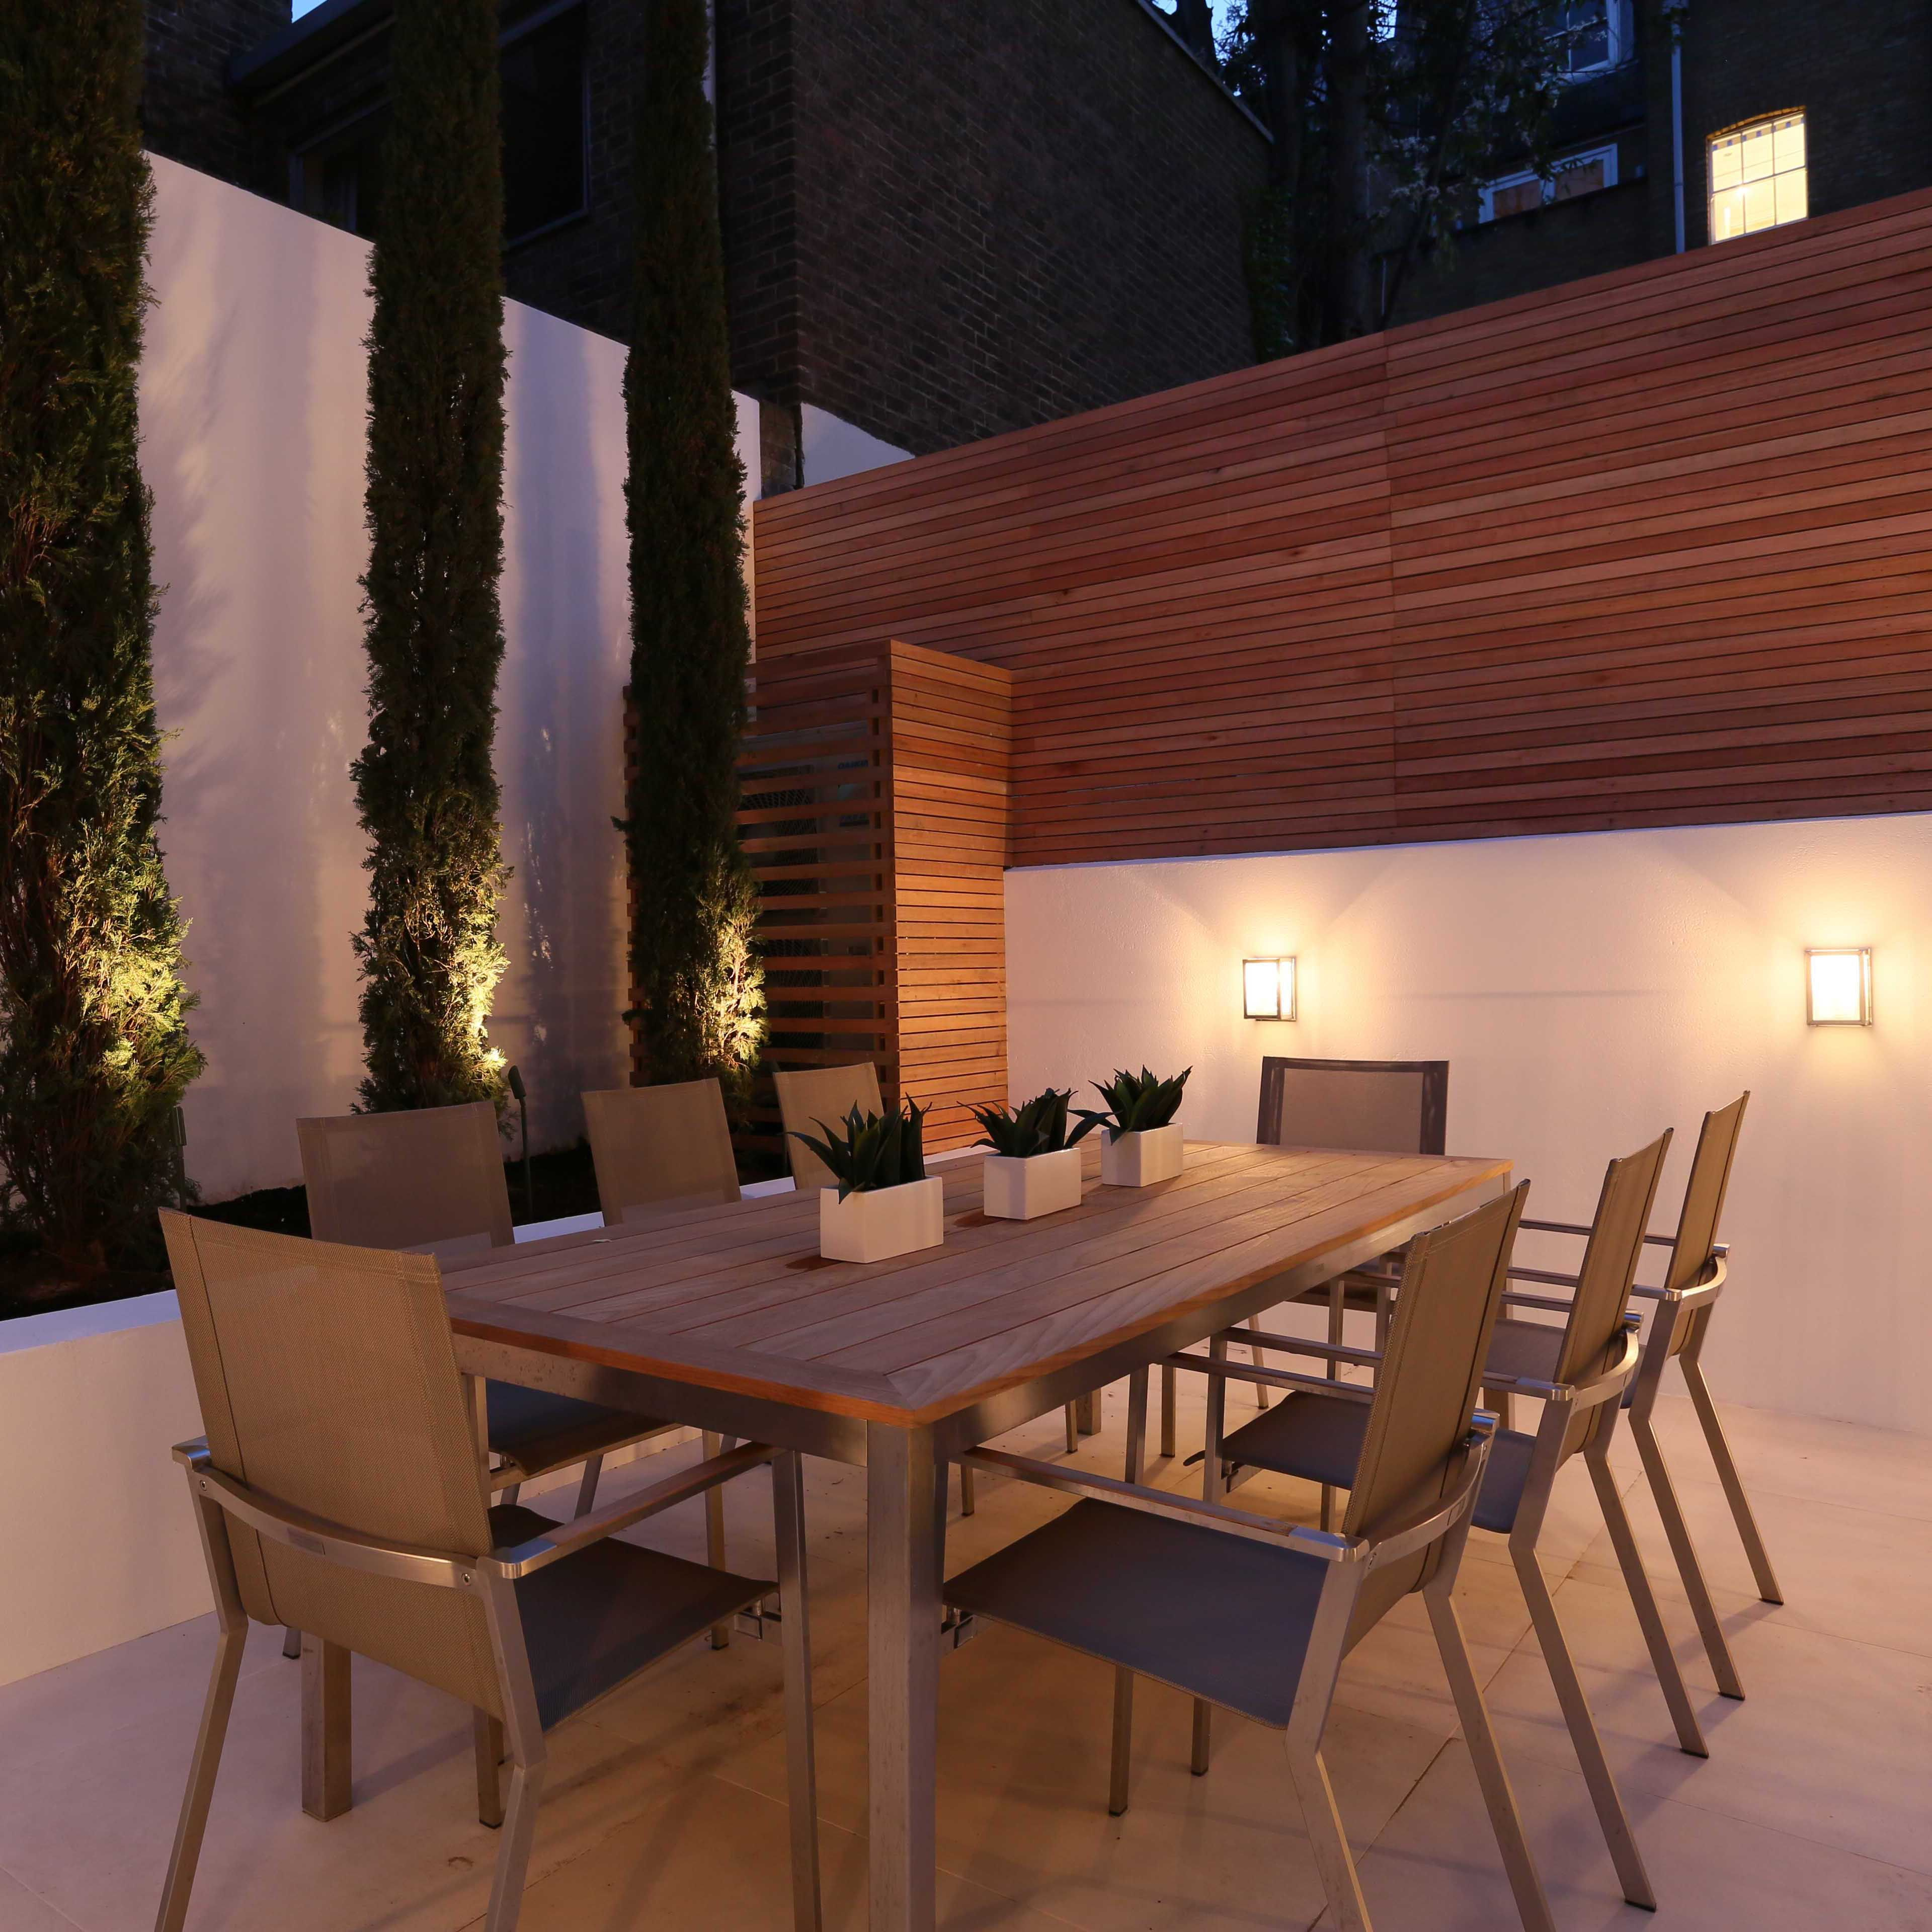 external lighting ideas. Bring The Outside In And Impress Your Guests With Stunning Garden Lighting. View A Variety Of Lighting Ideas Along Products To Get Look External G